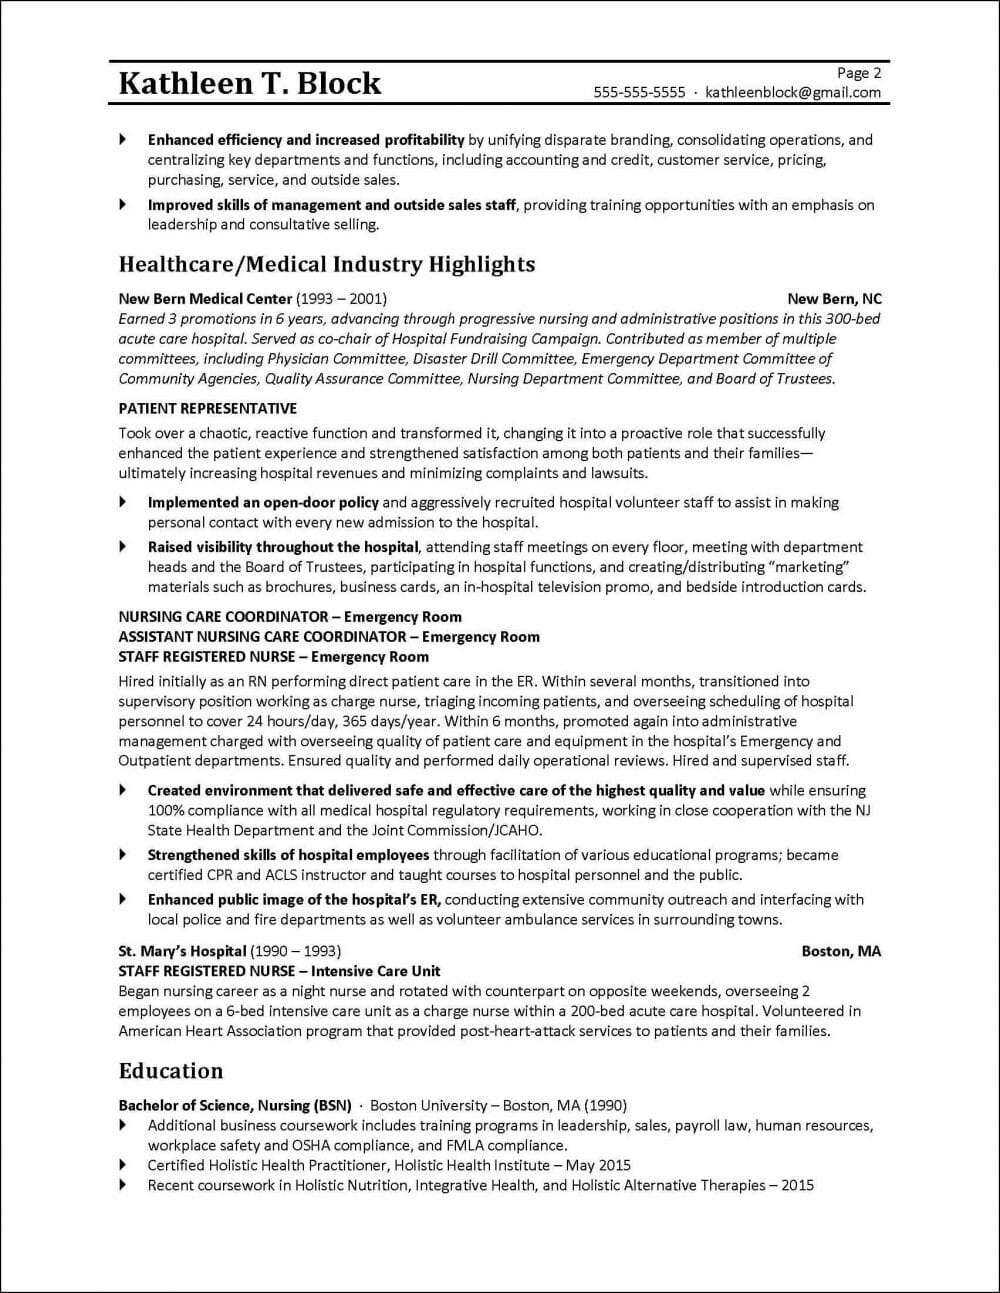 Management Resume Sample page 2